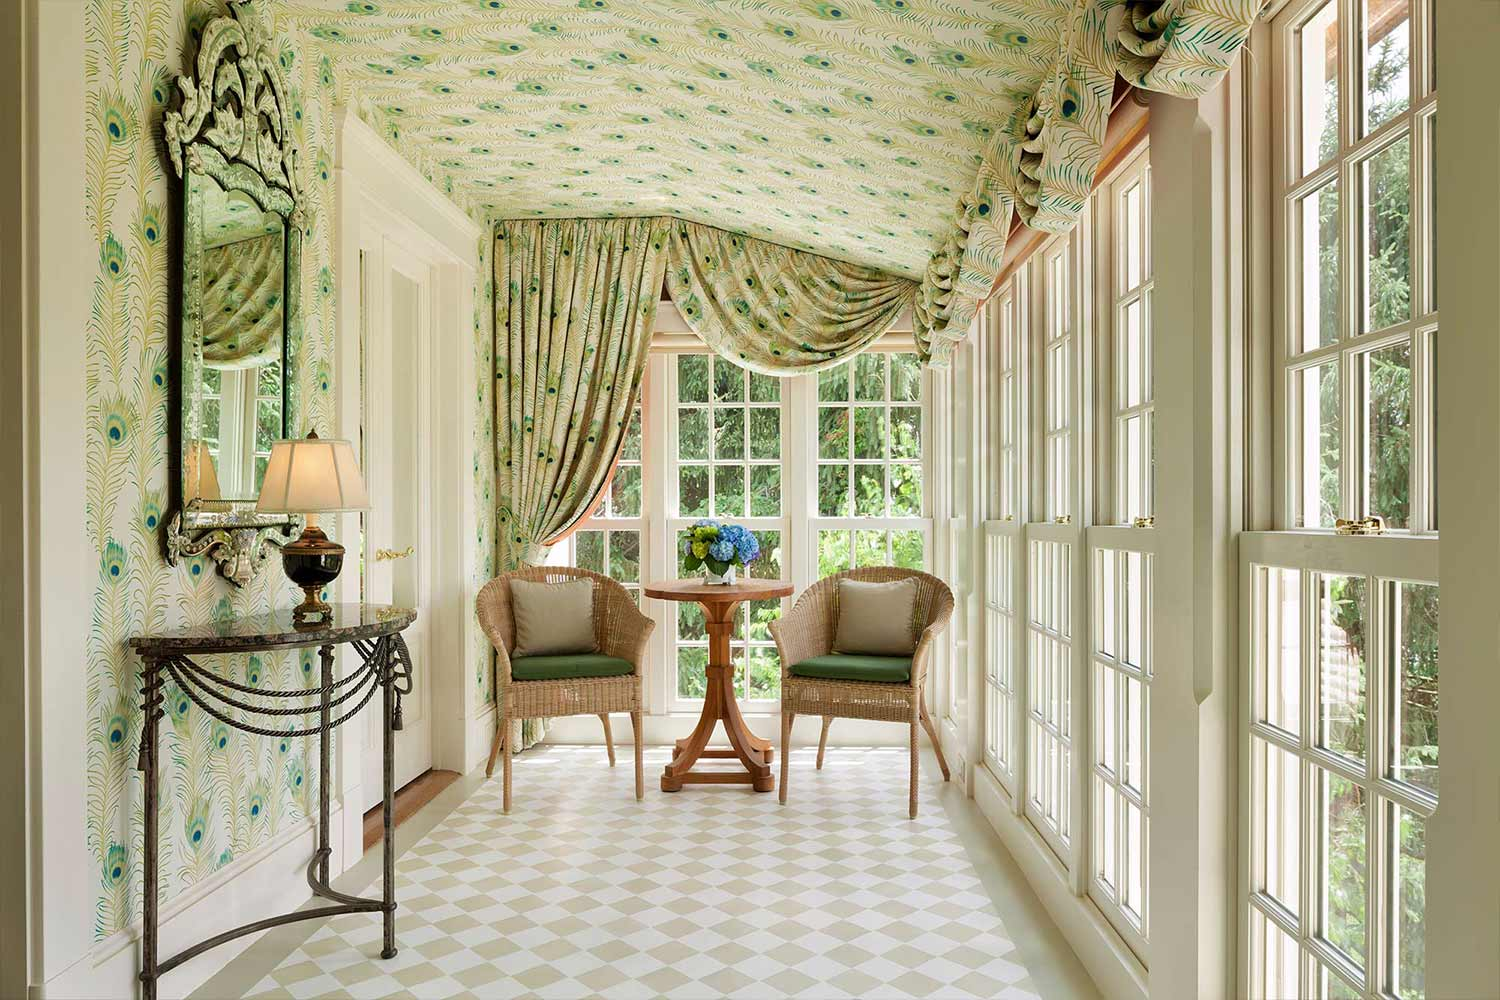 Room 14's private sunroom. Sunlight streams into the room with floor to ceiling windows and green wallpaper.